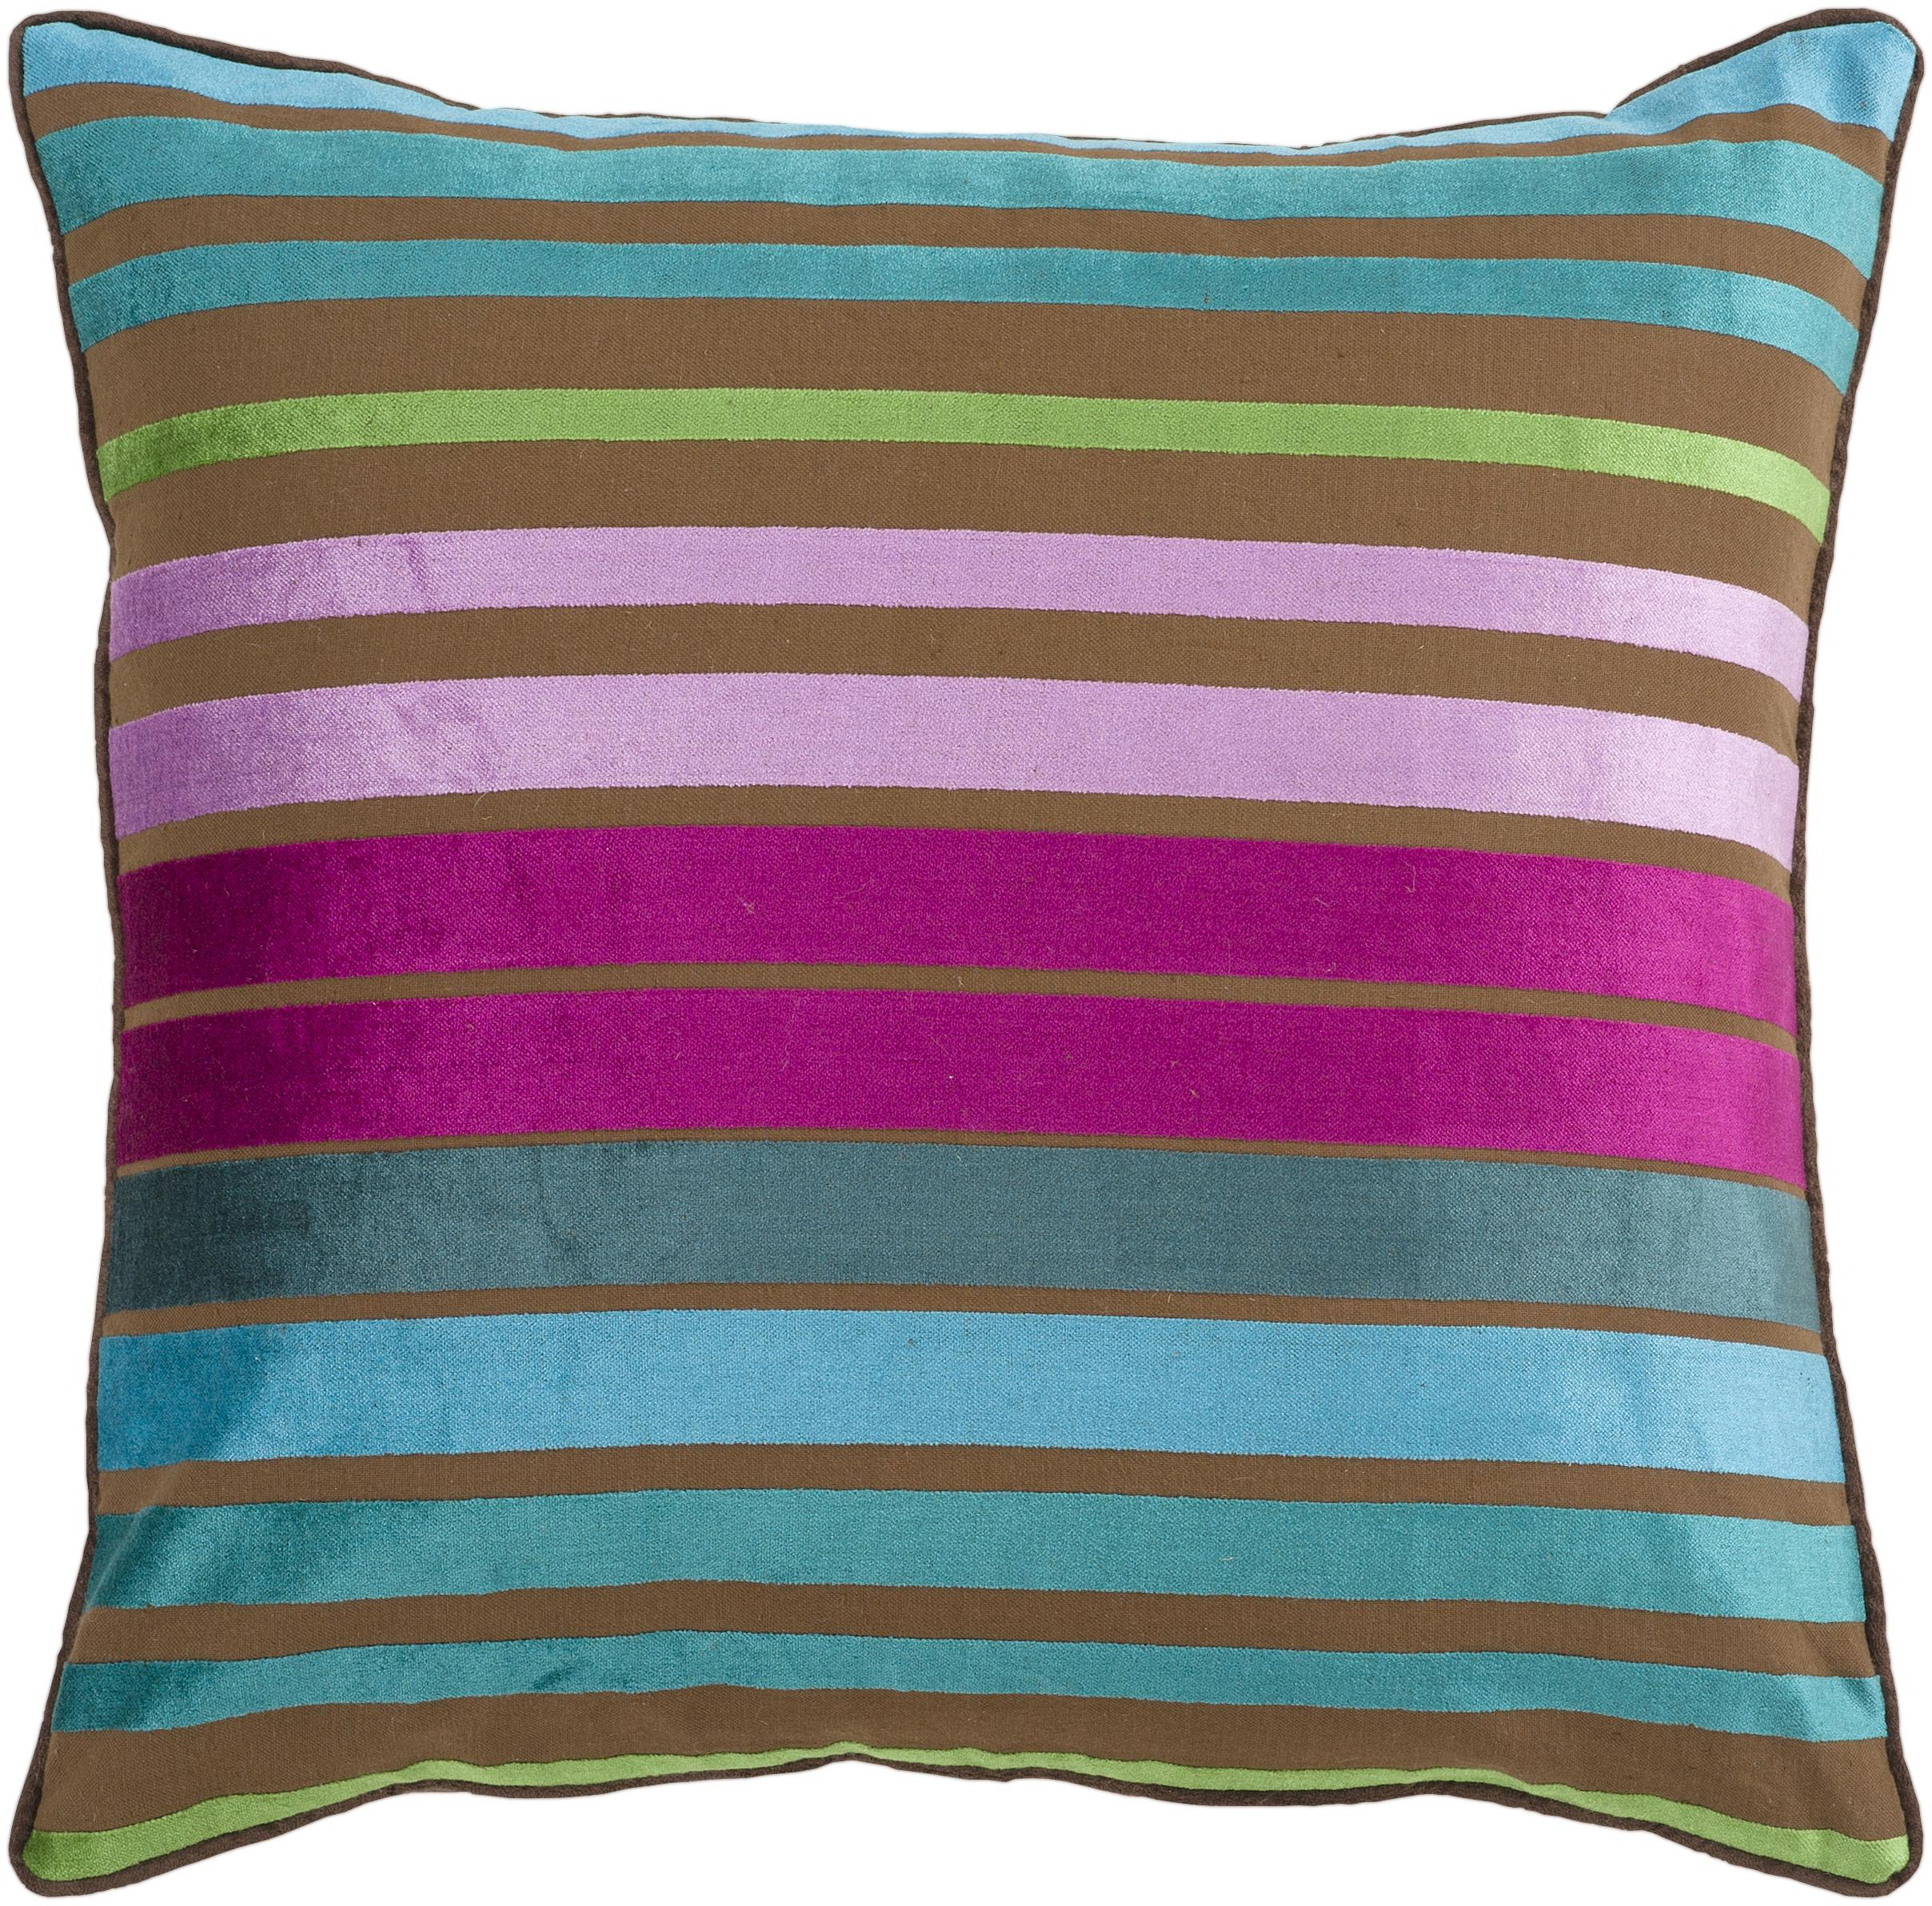 "Surya Rugs Pillows 22"" x 22"" Pillow - Item Number: JS019-2222P"